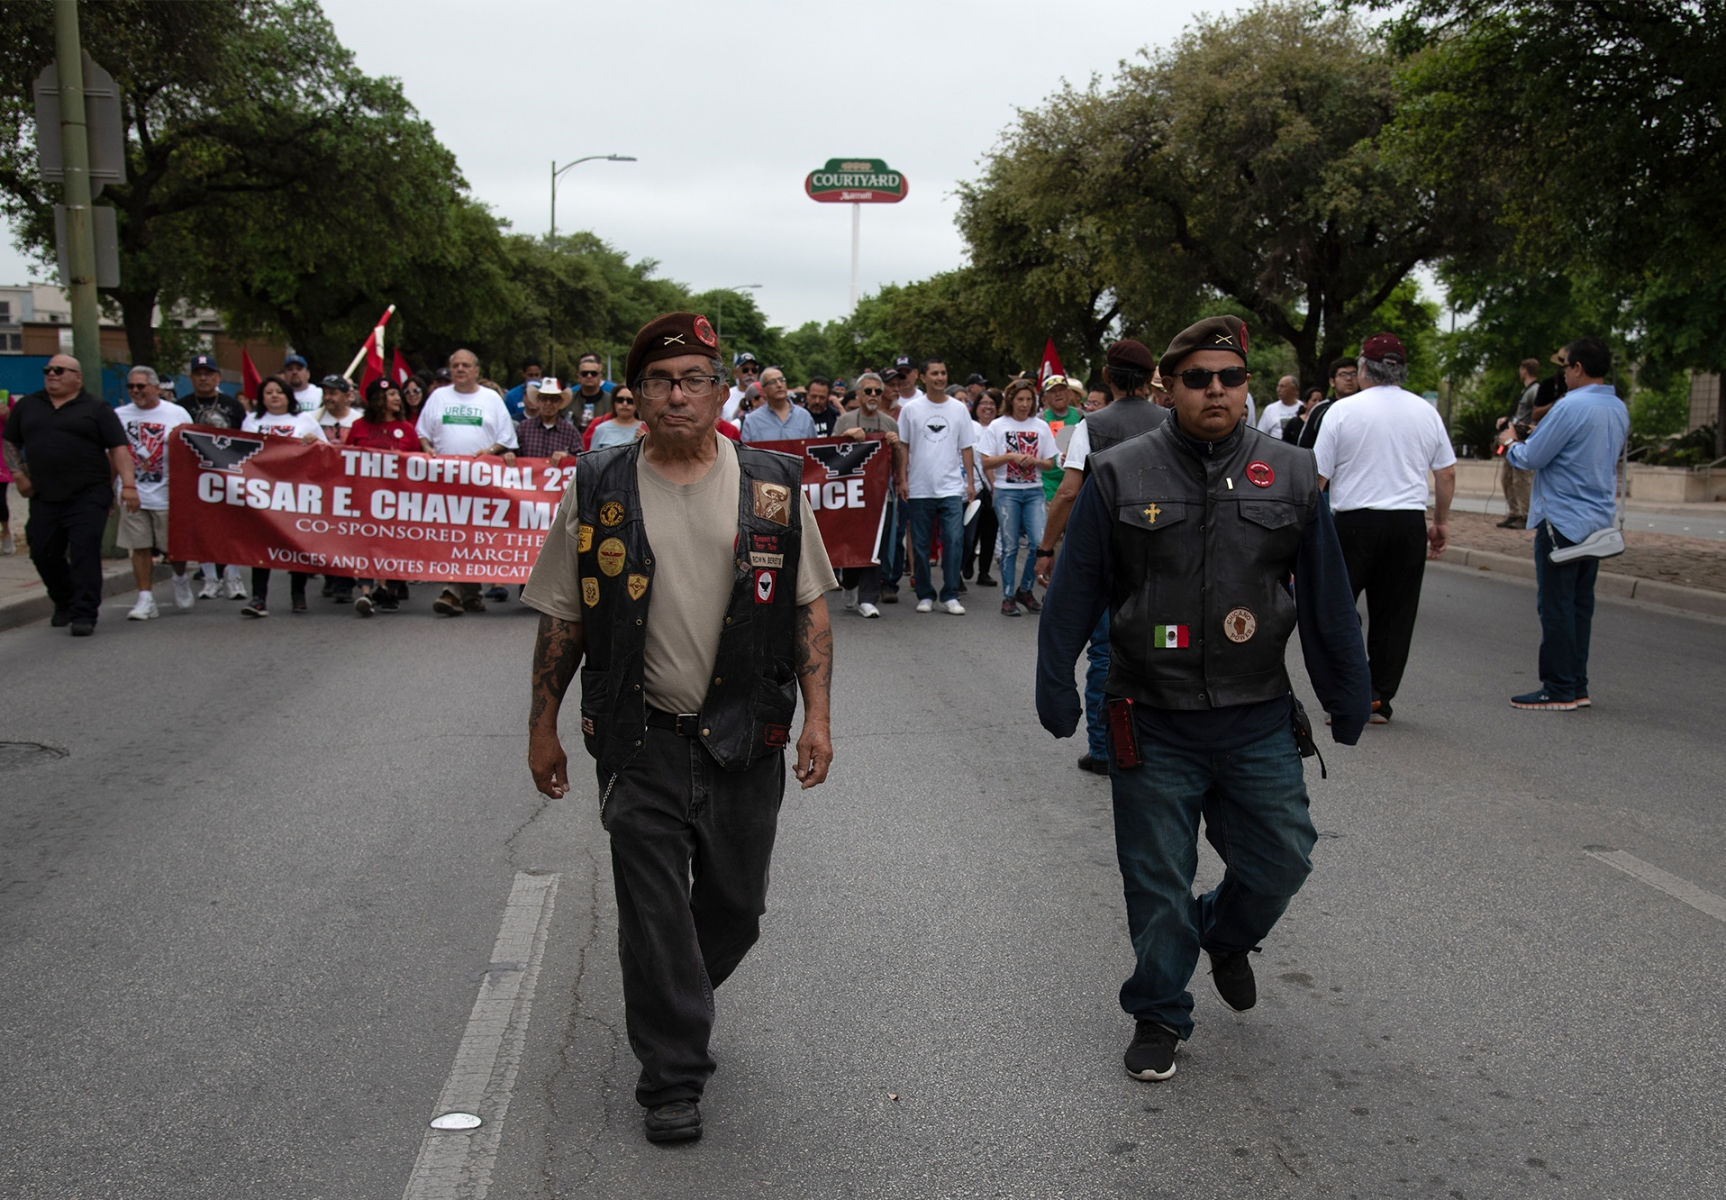 Victor San Miguel (left) and Emmanuel Gomez, members of the Carnalismo Brown Berets of San Antonio, walk in San Antonio's 23rd annual César E. Chávez March for Justice on Saturday, March 30, on South Santa Rosa Avenue. San Miguel has been a member of the San Antonio chapter since the 1960s.  Photo by V. Finster | Heron